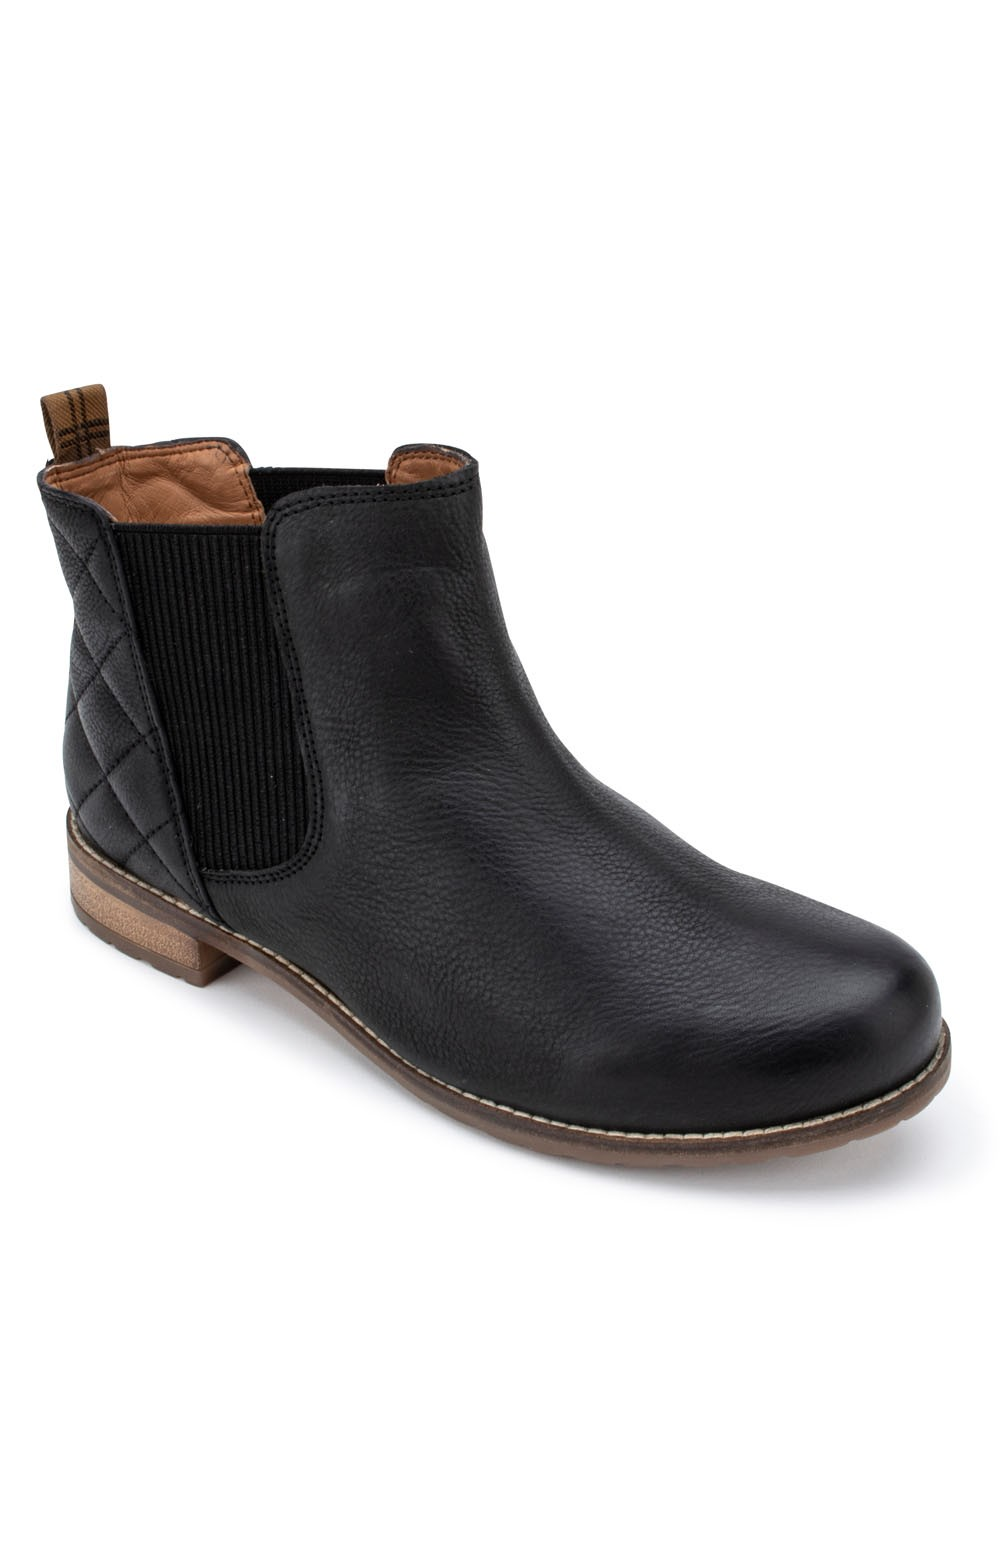 13e6519fe8aa Barbour Ladies Abigail Boot - House of Bruar